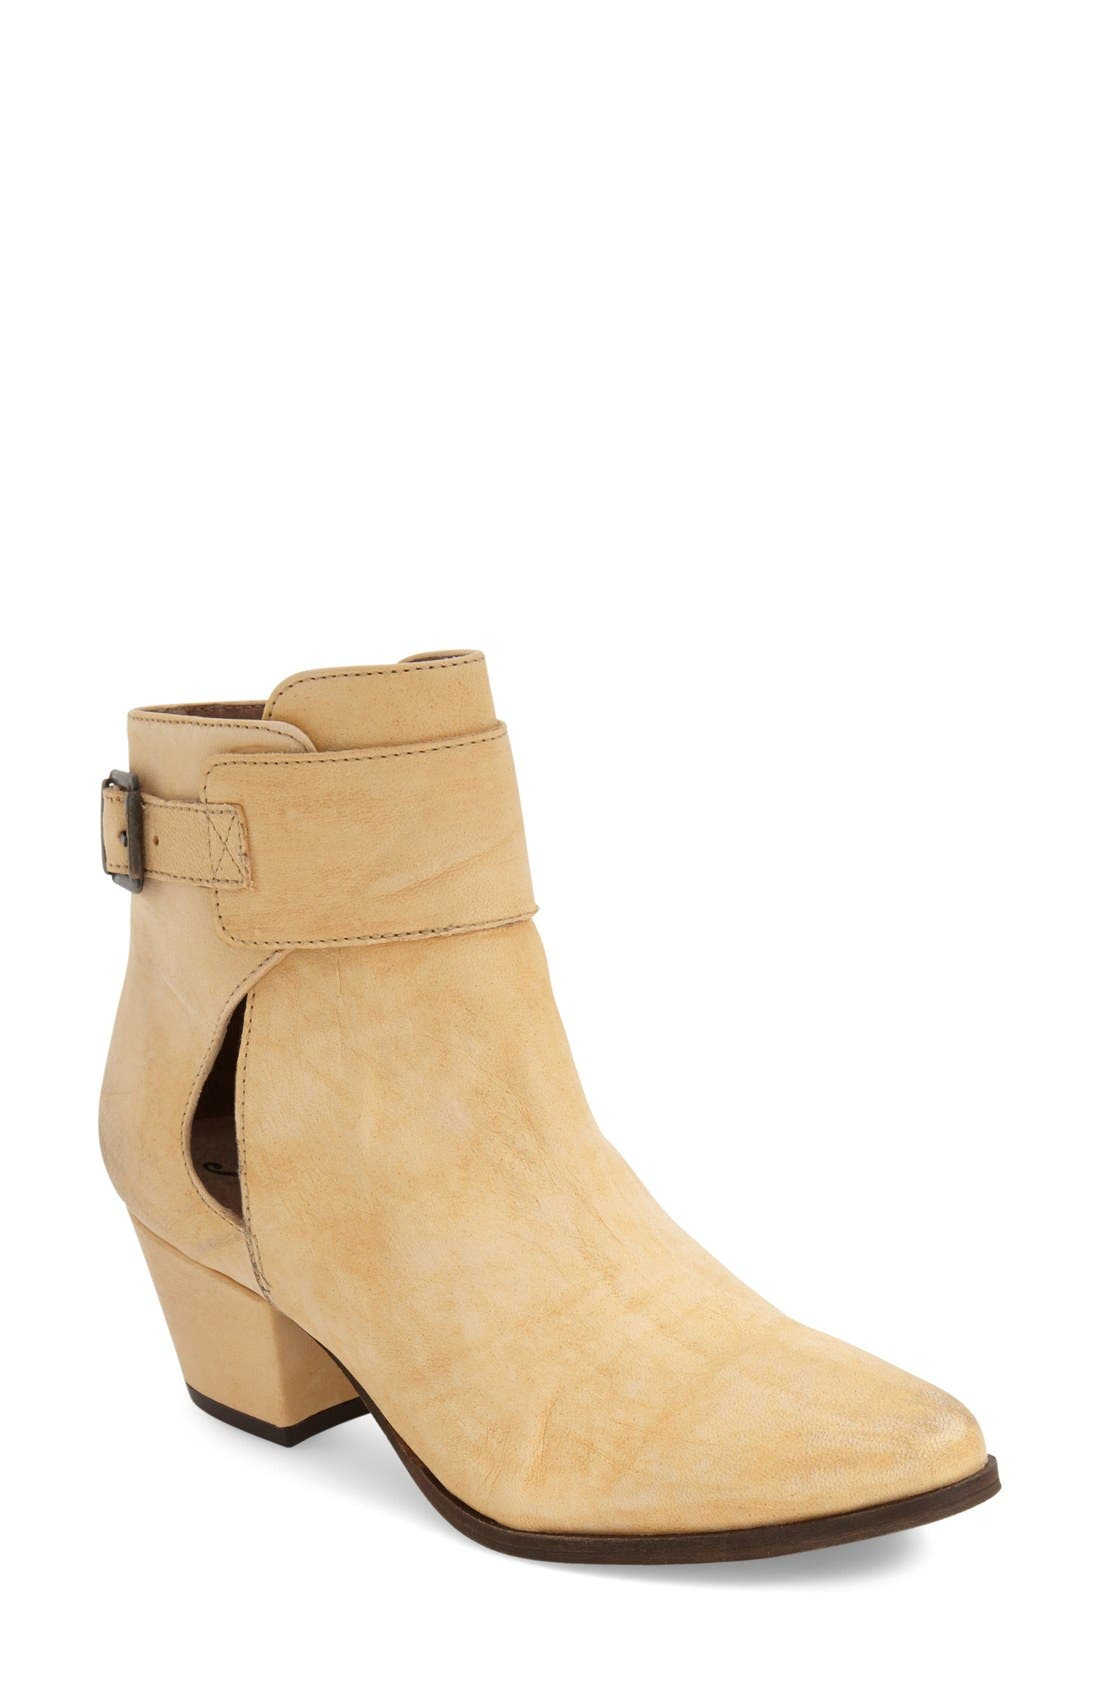 Alternate Image 1 Selected - Free People 'Belleville' Ankle Bootie (Women)